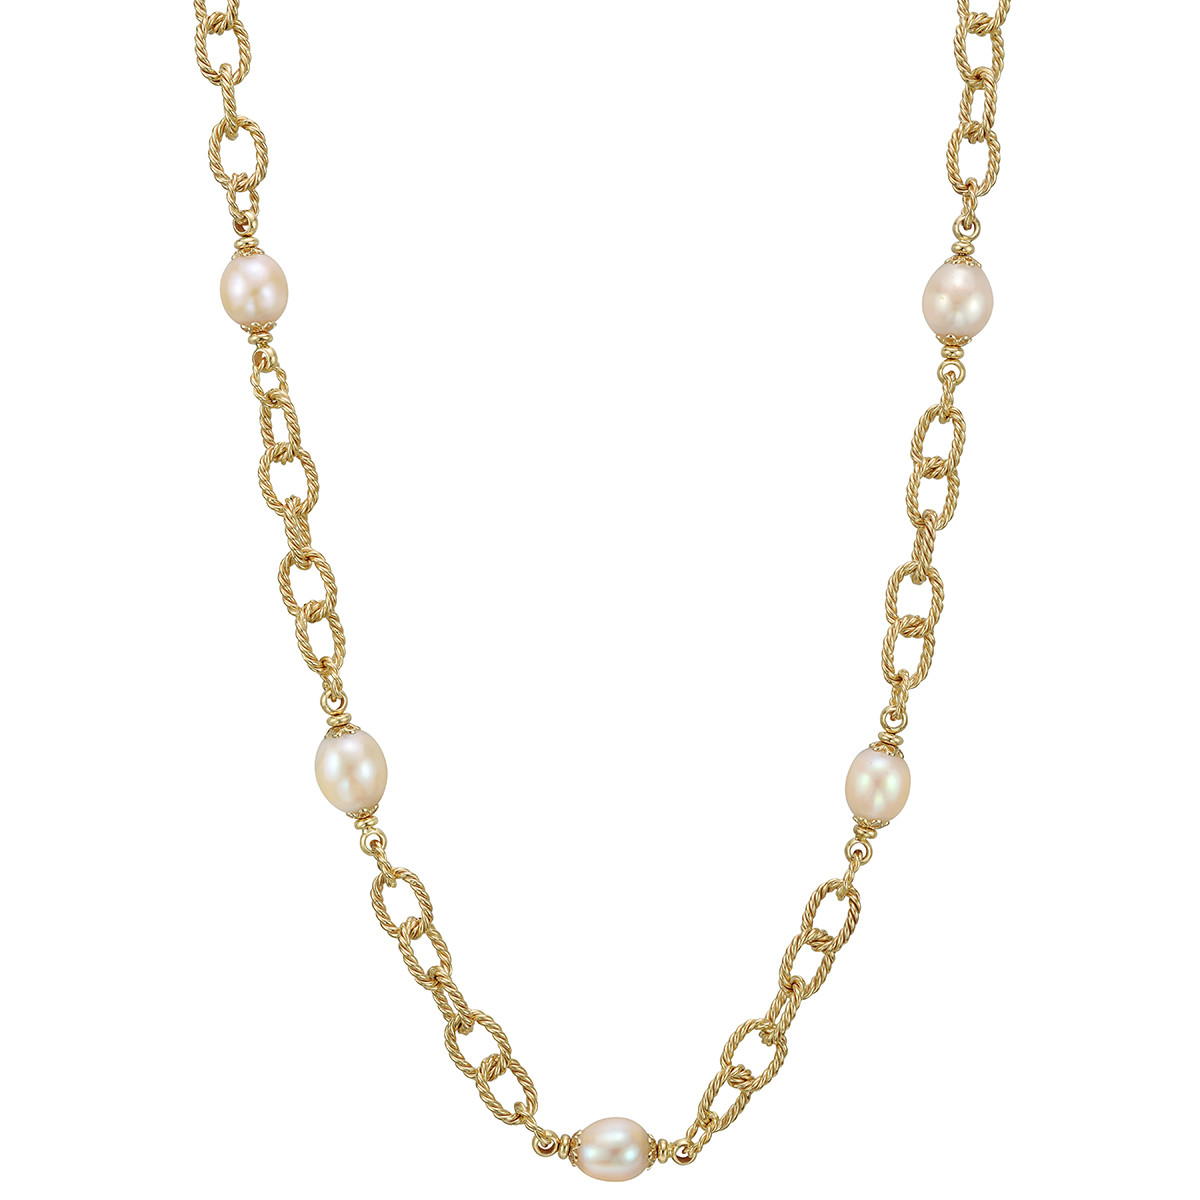 14k Yellow Gold & Pearl Long Chain Necklace